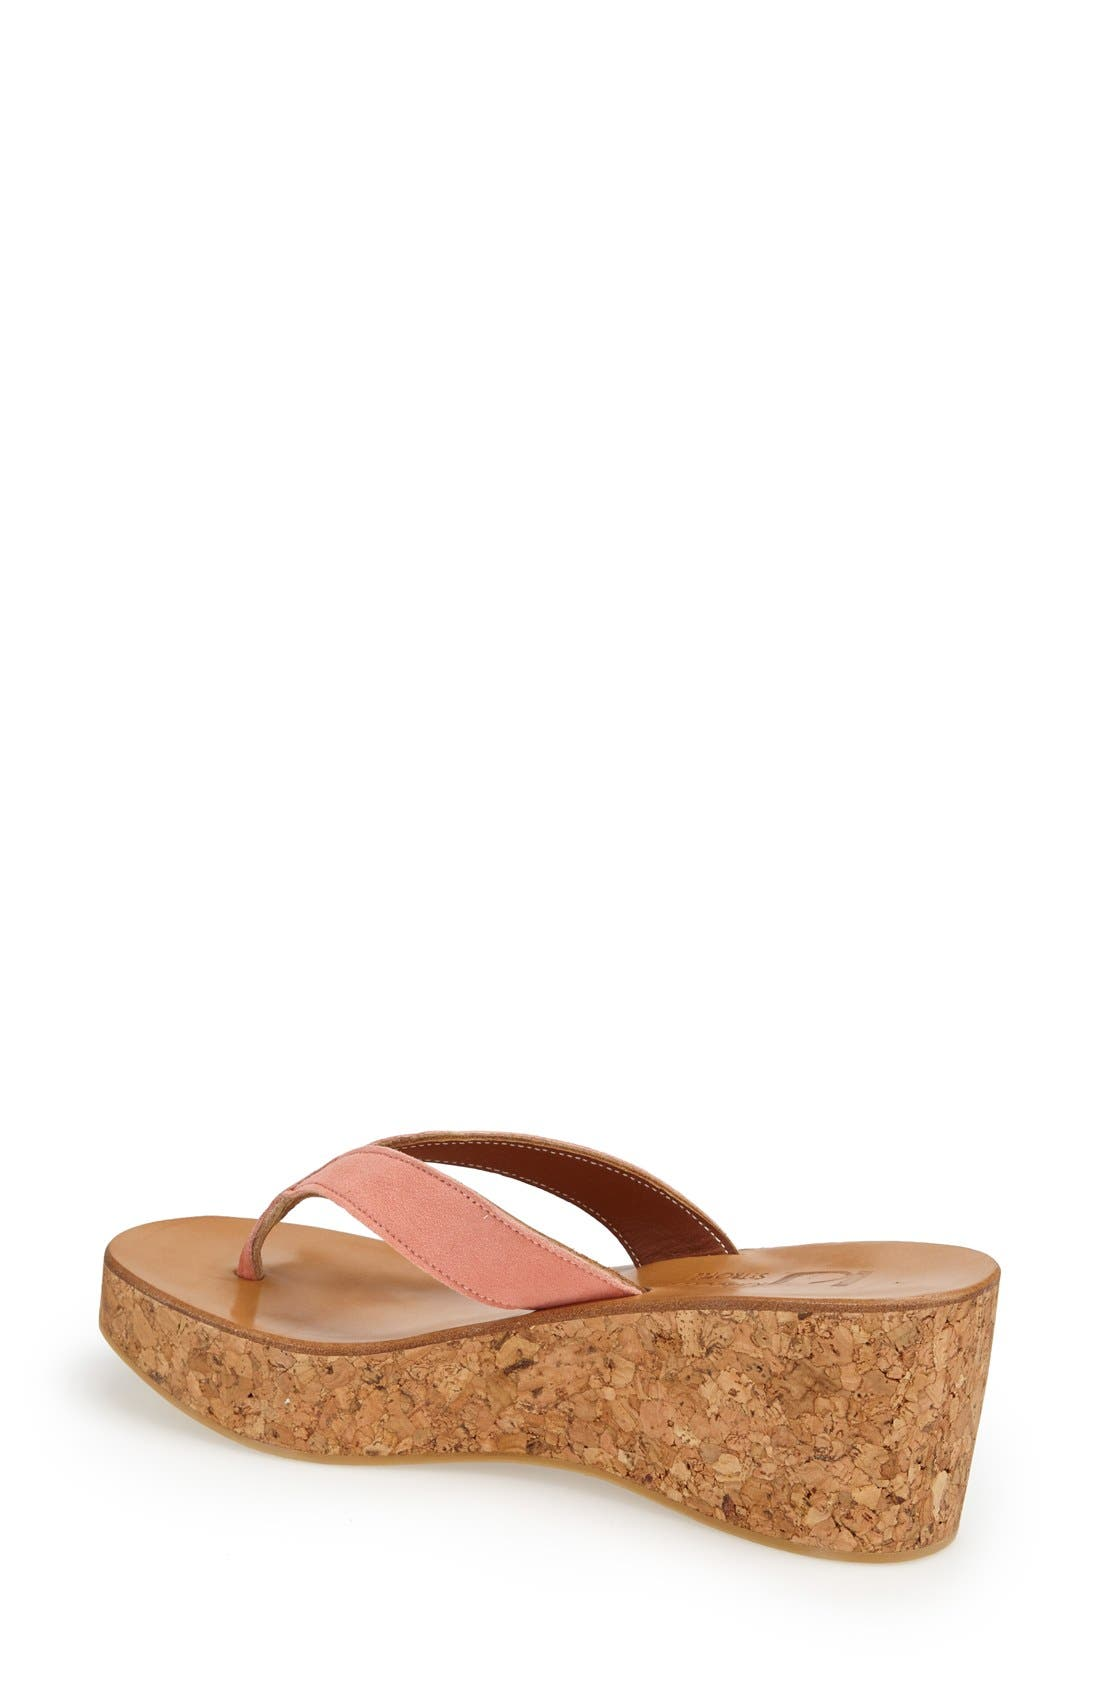 Alternate Image 2  - K.Jacques St. Tropez 'Diorite' Wedge Sandal (Women)